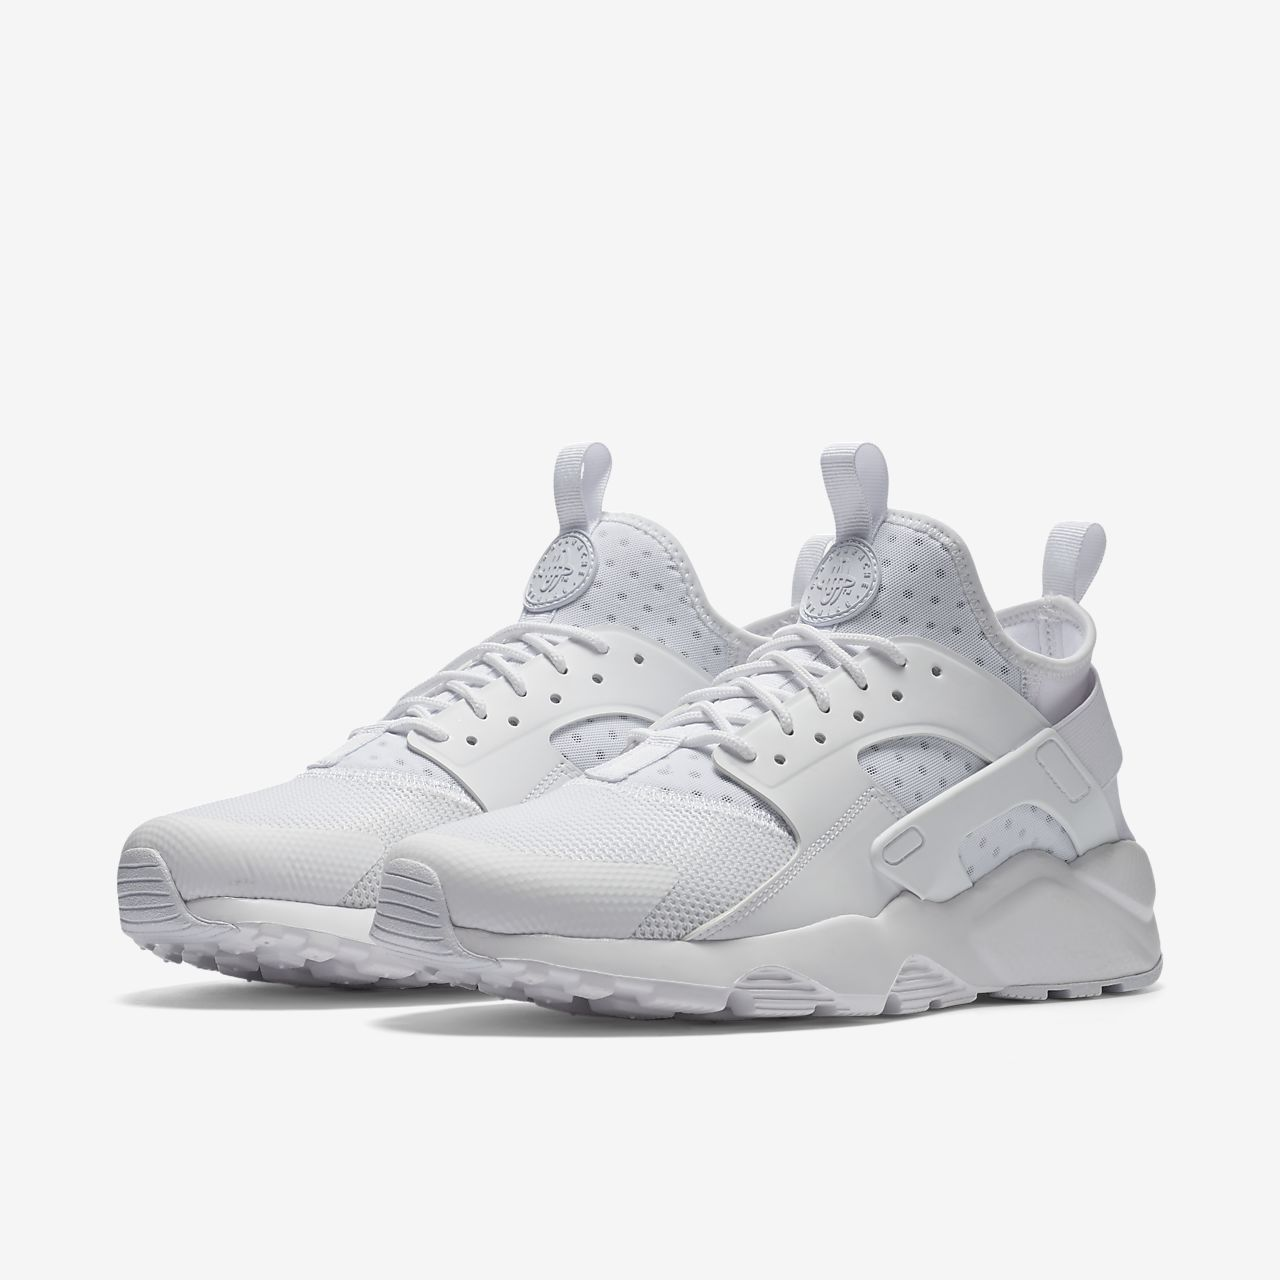 nike air huarache ultra mens white and black nz